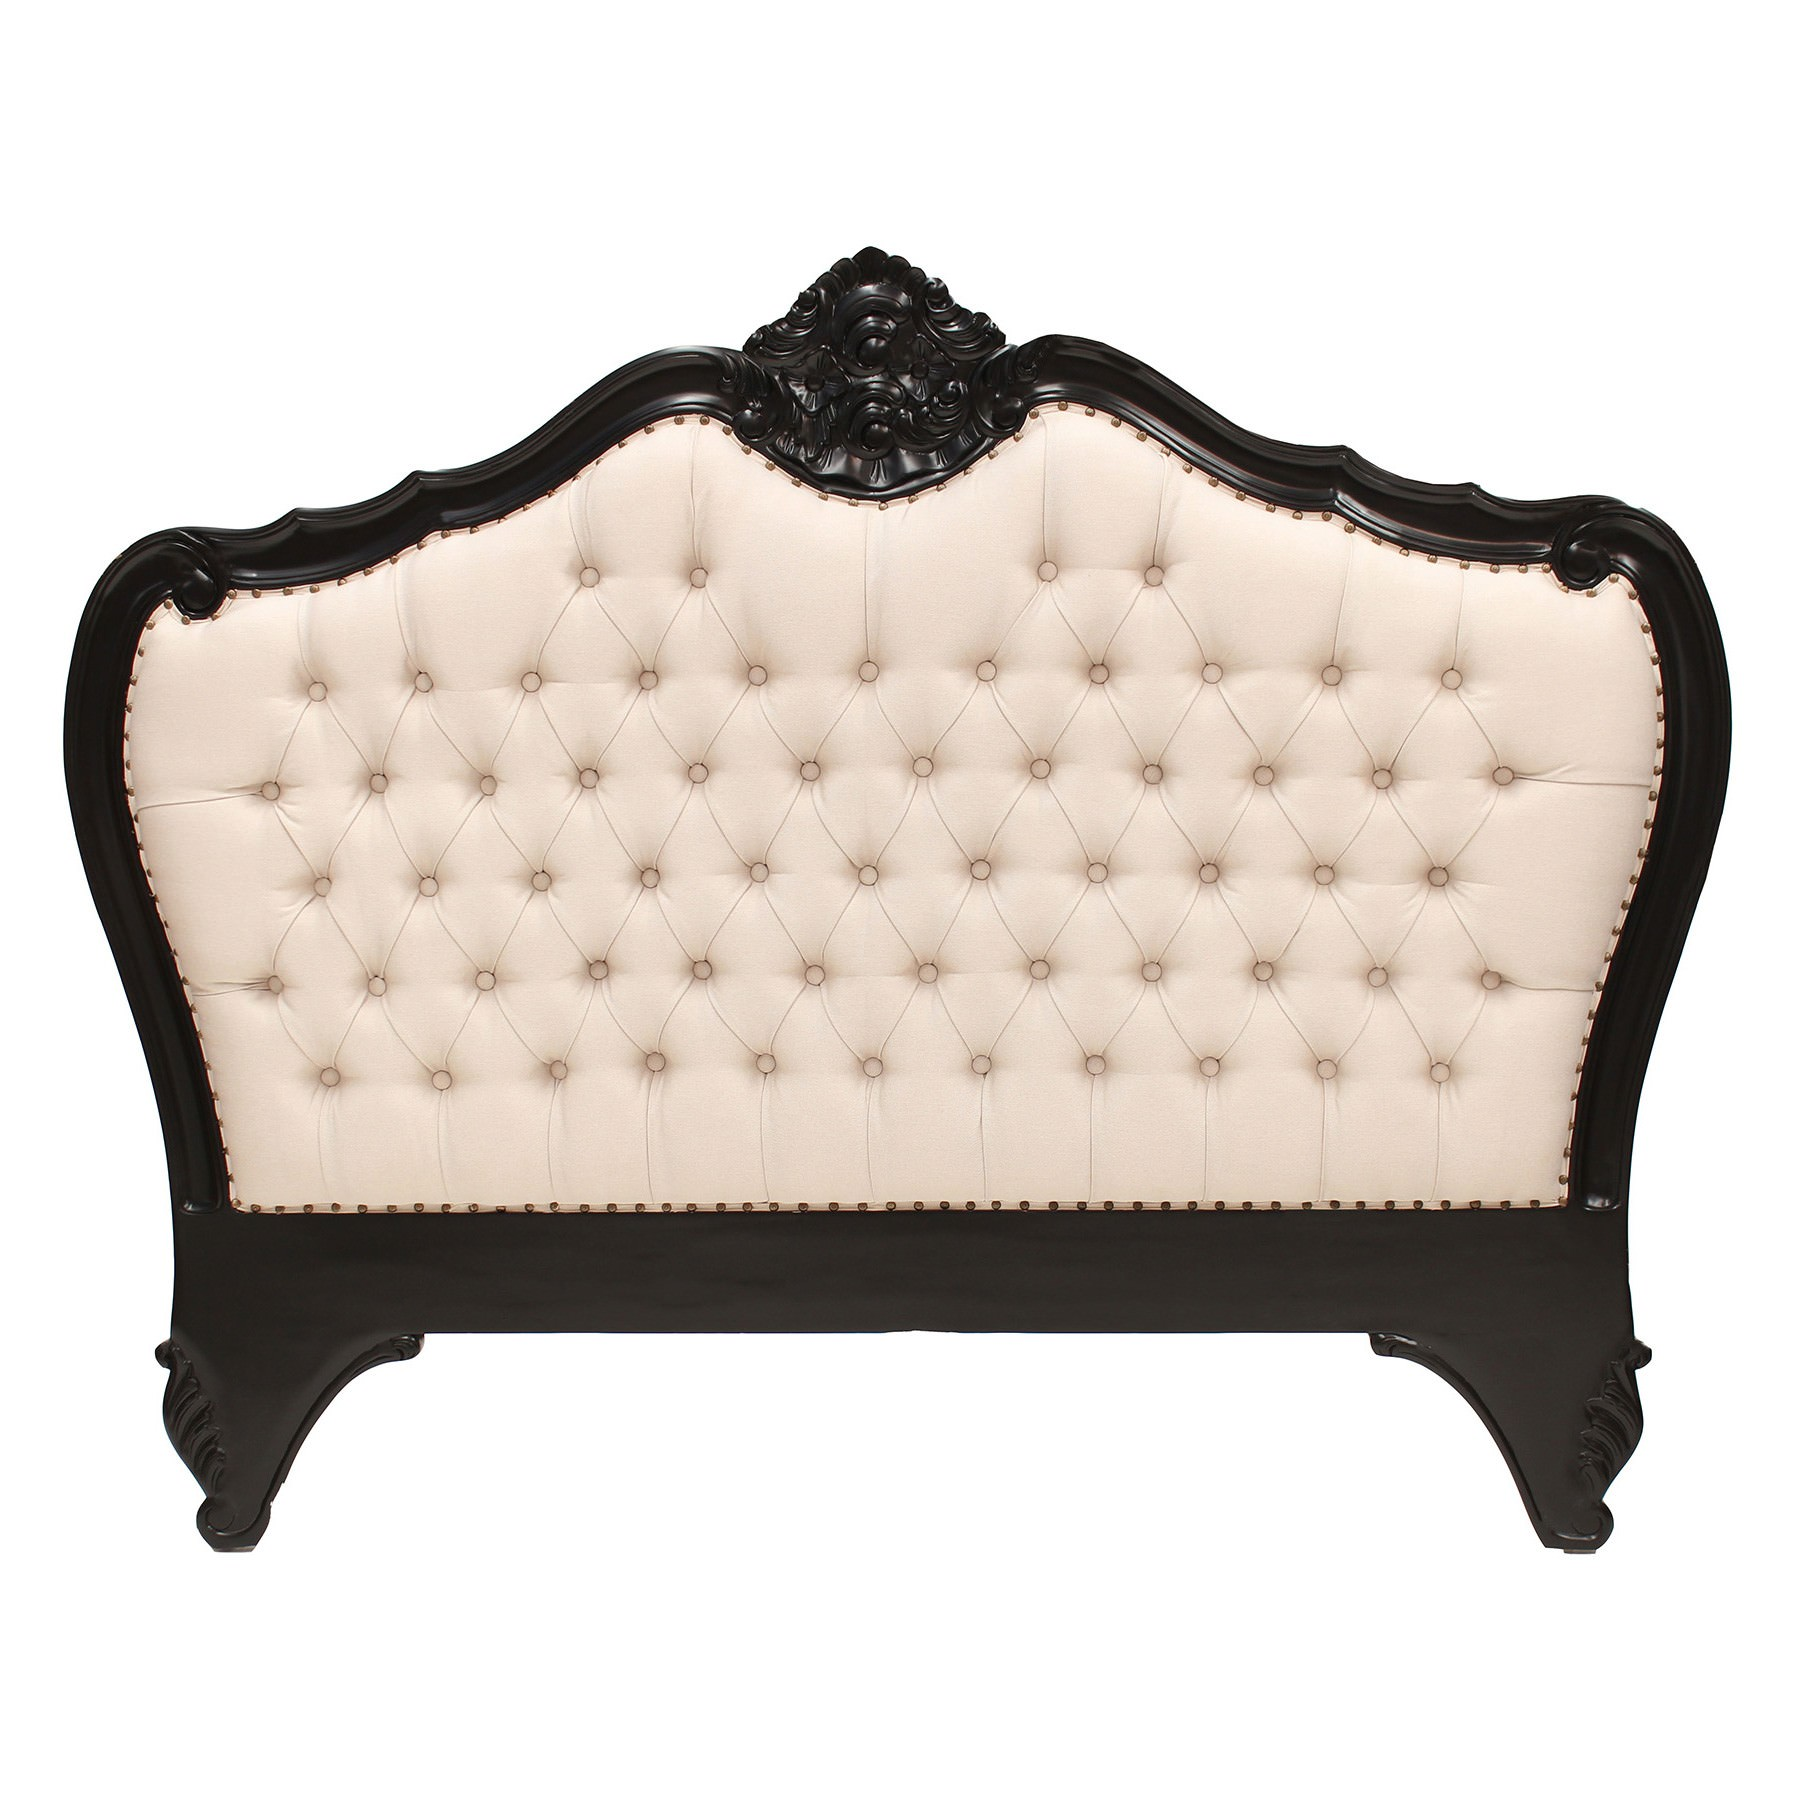 Challuy Hand Crafted Mahogany Upholstered King Size Bedhead, Black